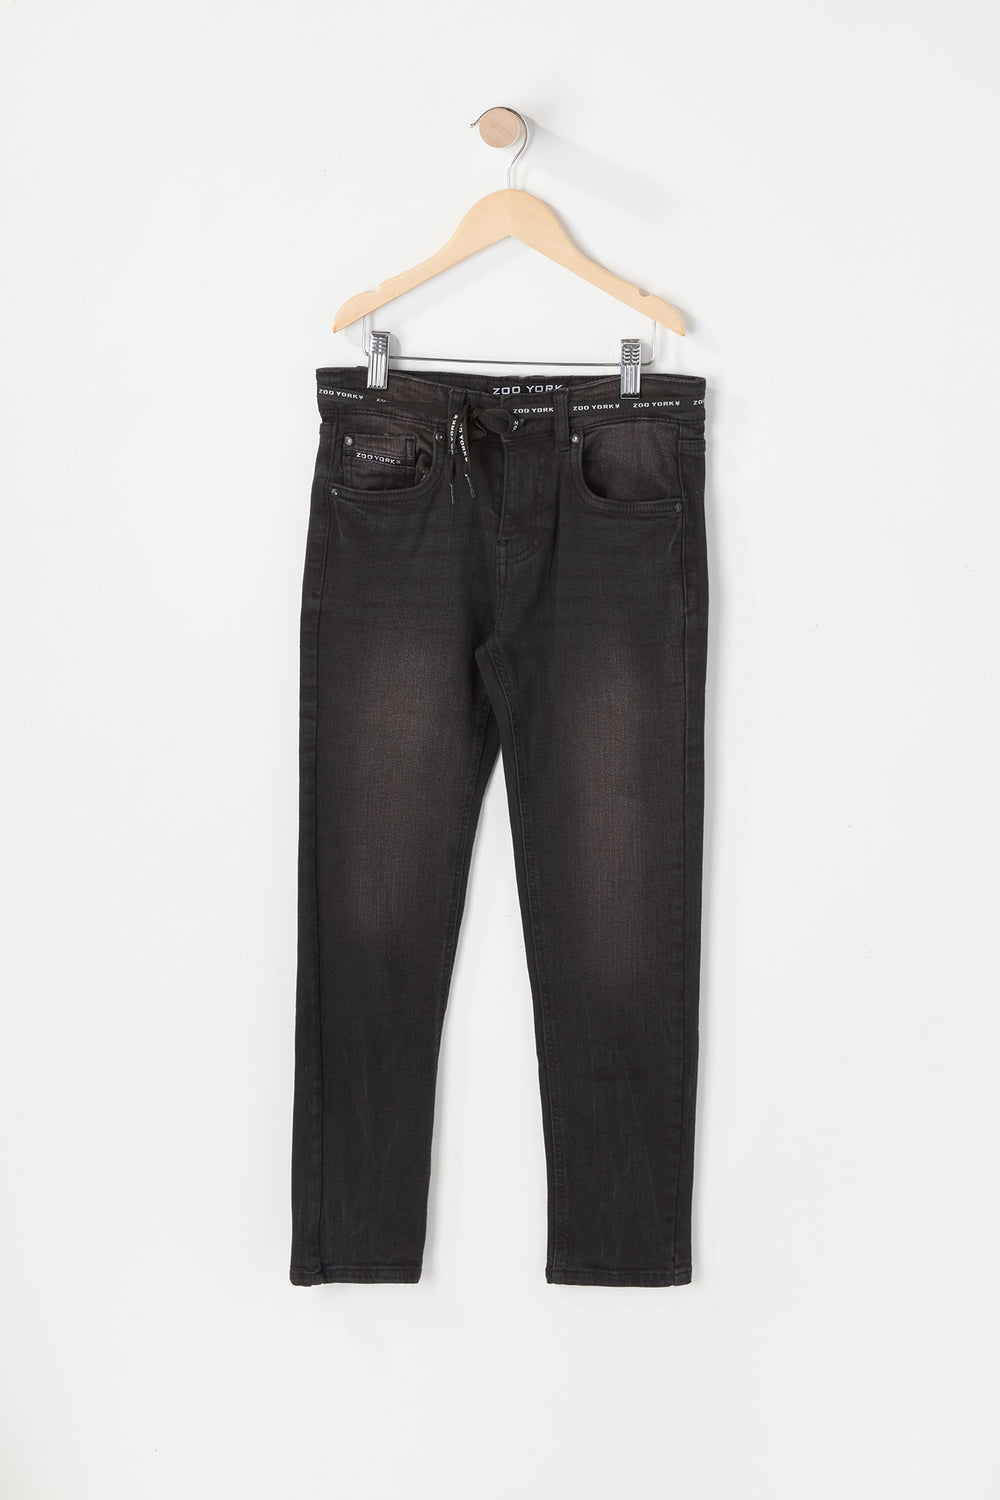 Zoo York Youth Skinny Black Jean Pure Black